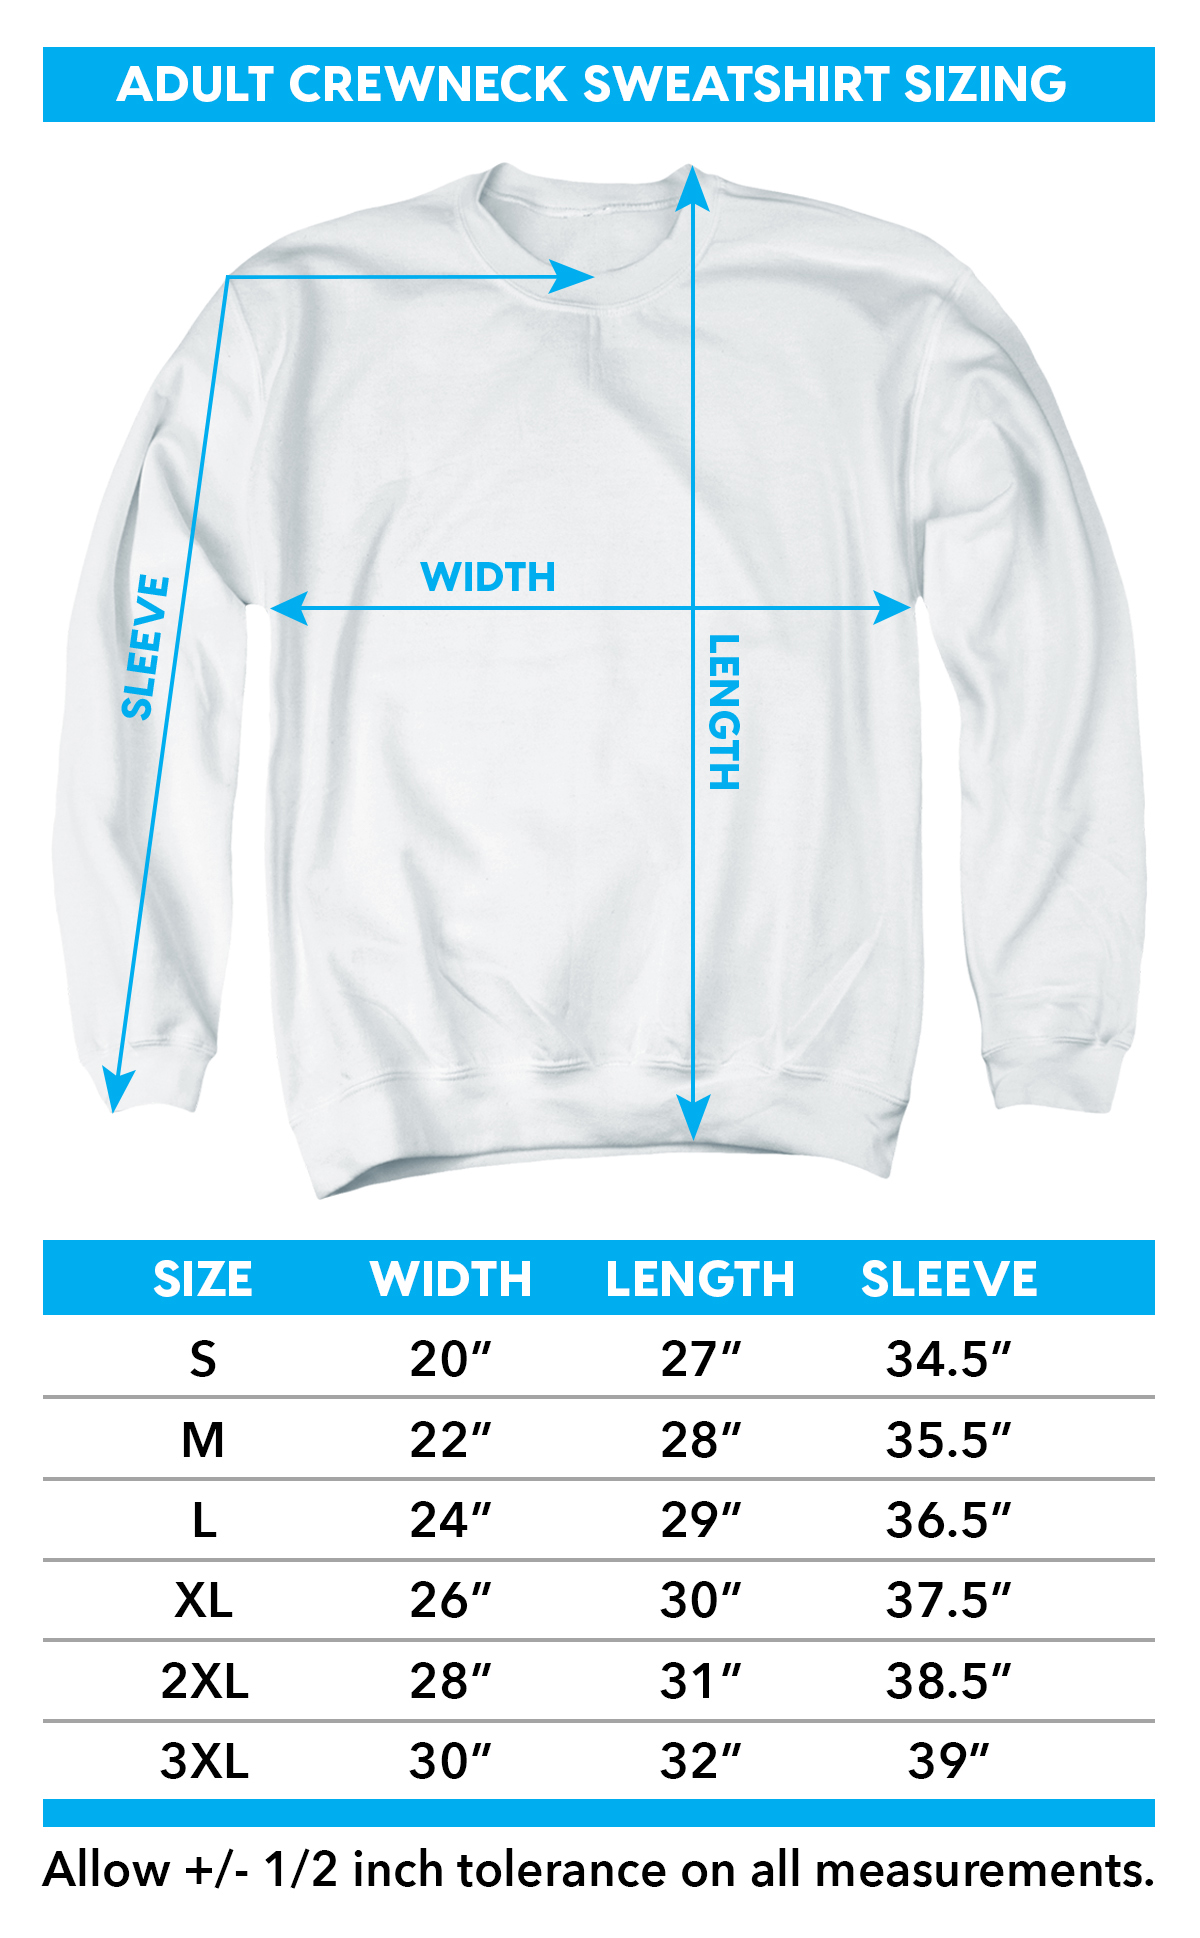 Sizing chart for the Flashdance crewneck sweatshirt